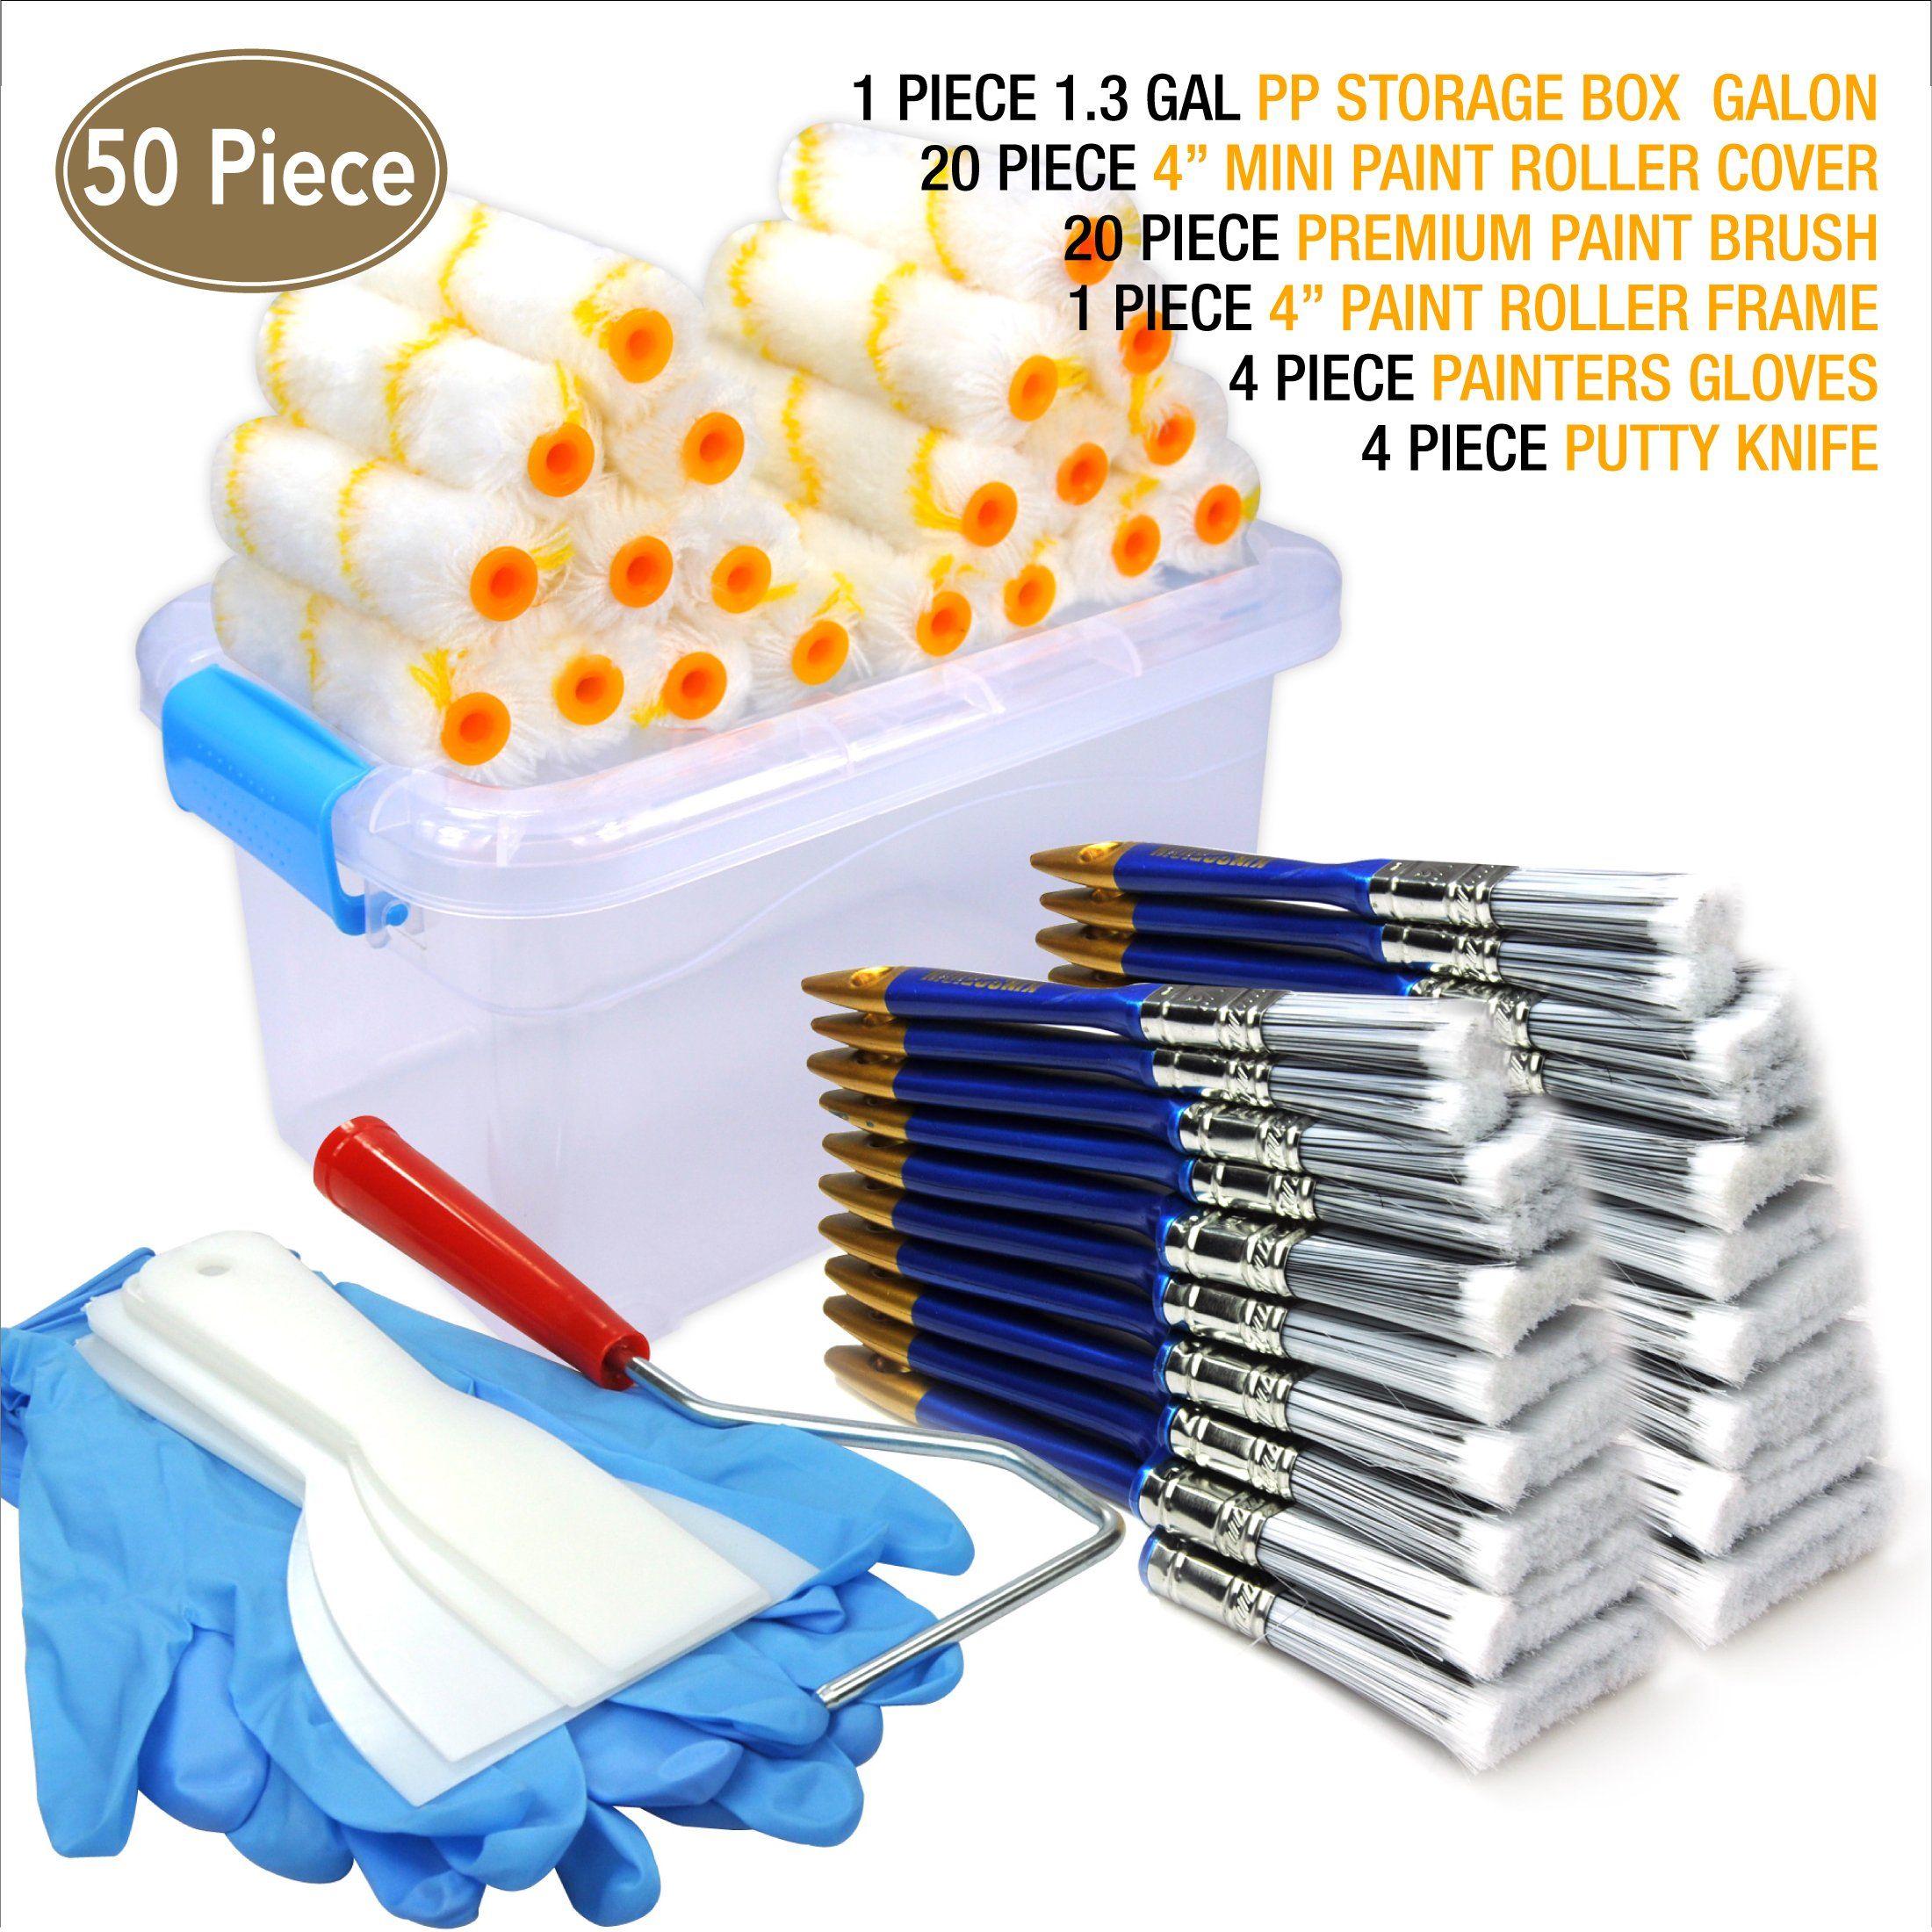 50 Piece Painters multi use,home tool kit,Mini paint roller covers,paint roller,paint brush,paint roller frame,home repair tools,tools,tool kit,tool case,home tool kit,tool storage,tool box